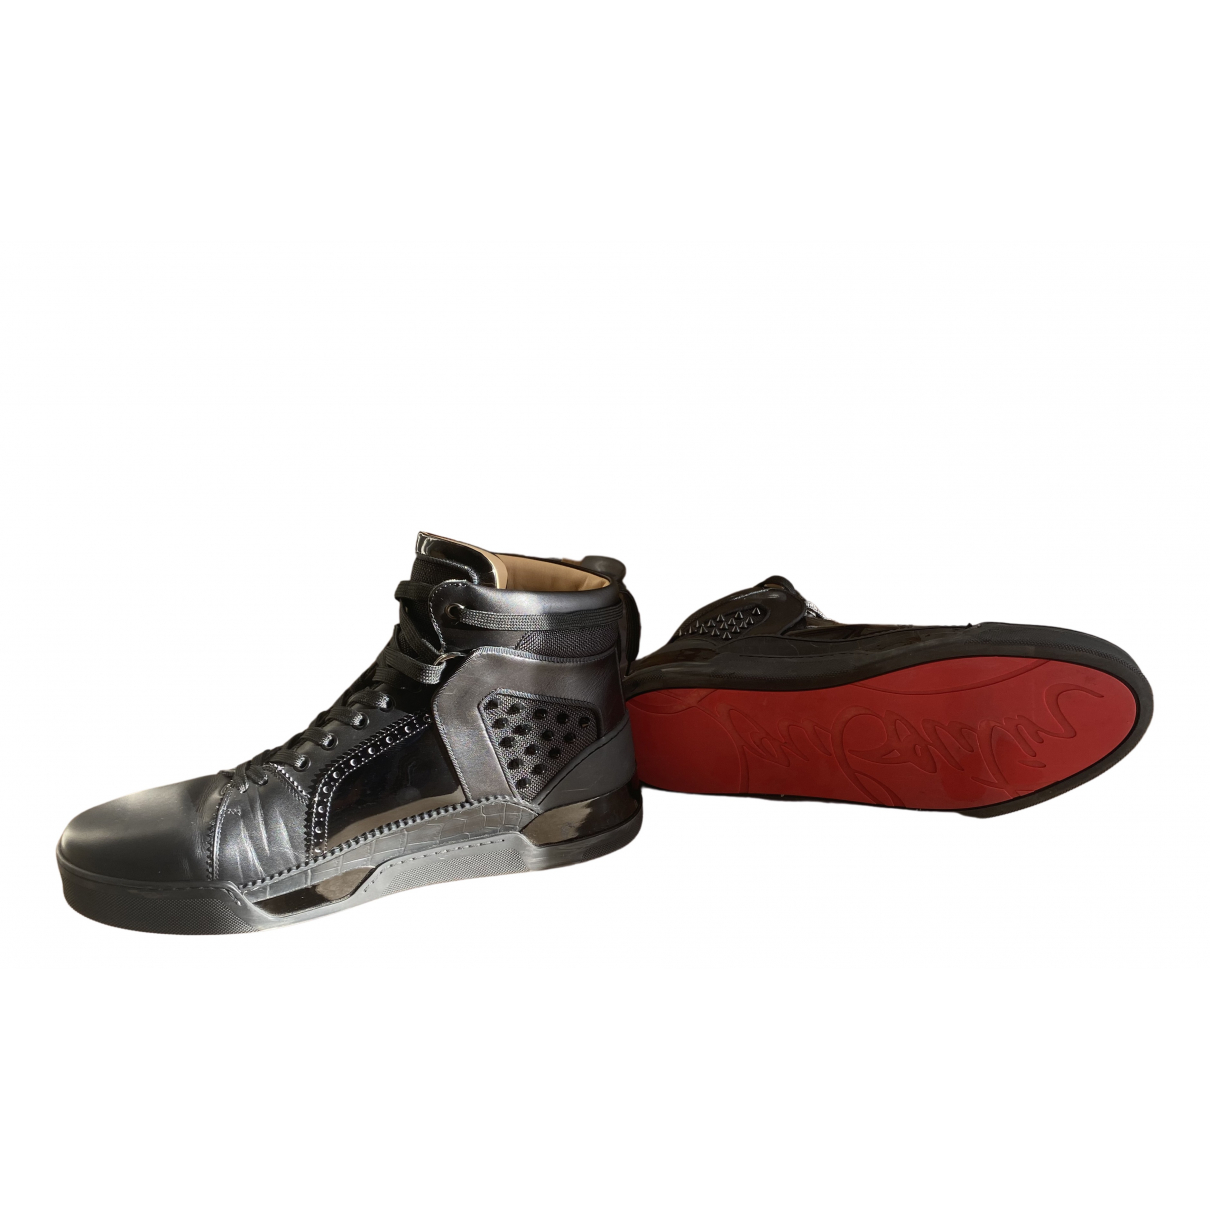 Christian Louboutin N Black Leather Trainers for Men 45.5 EU